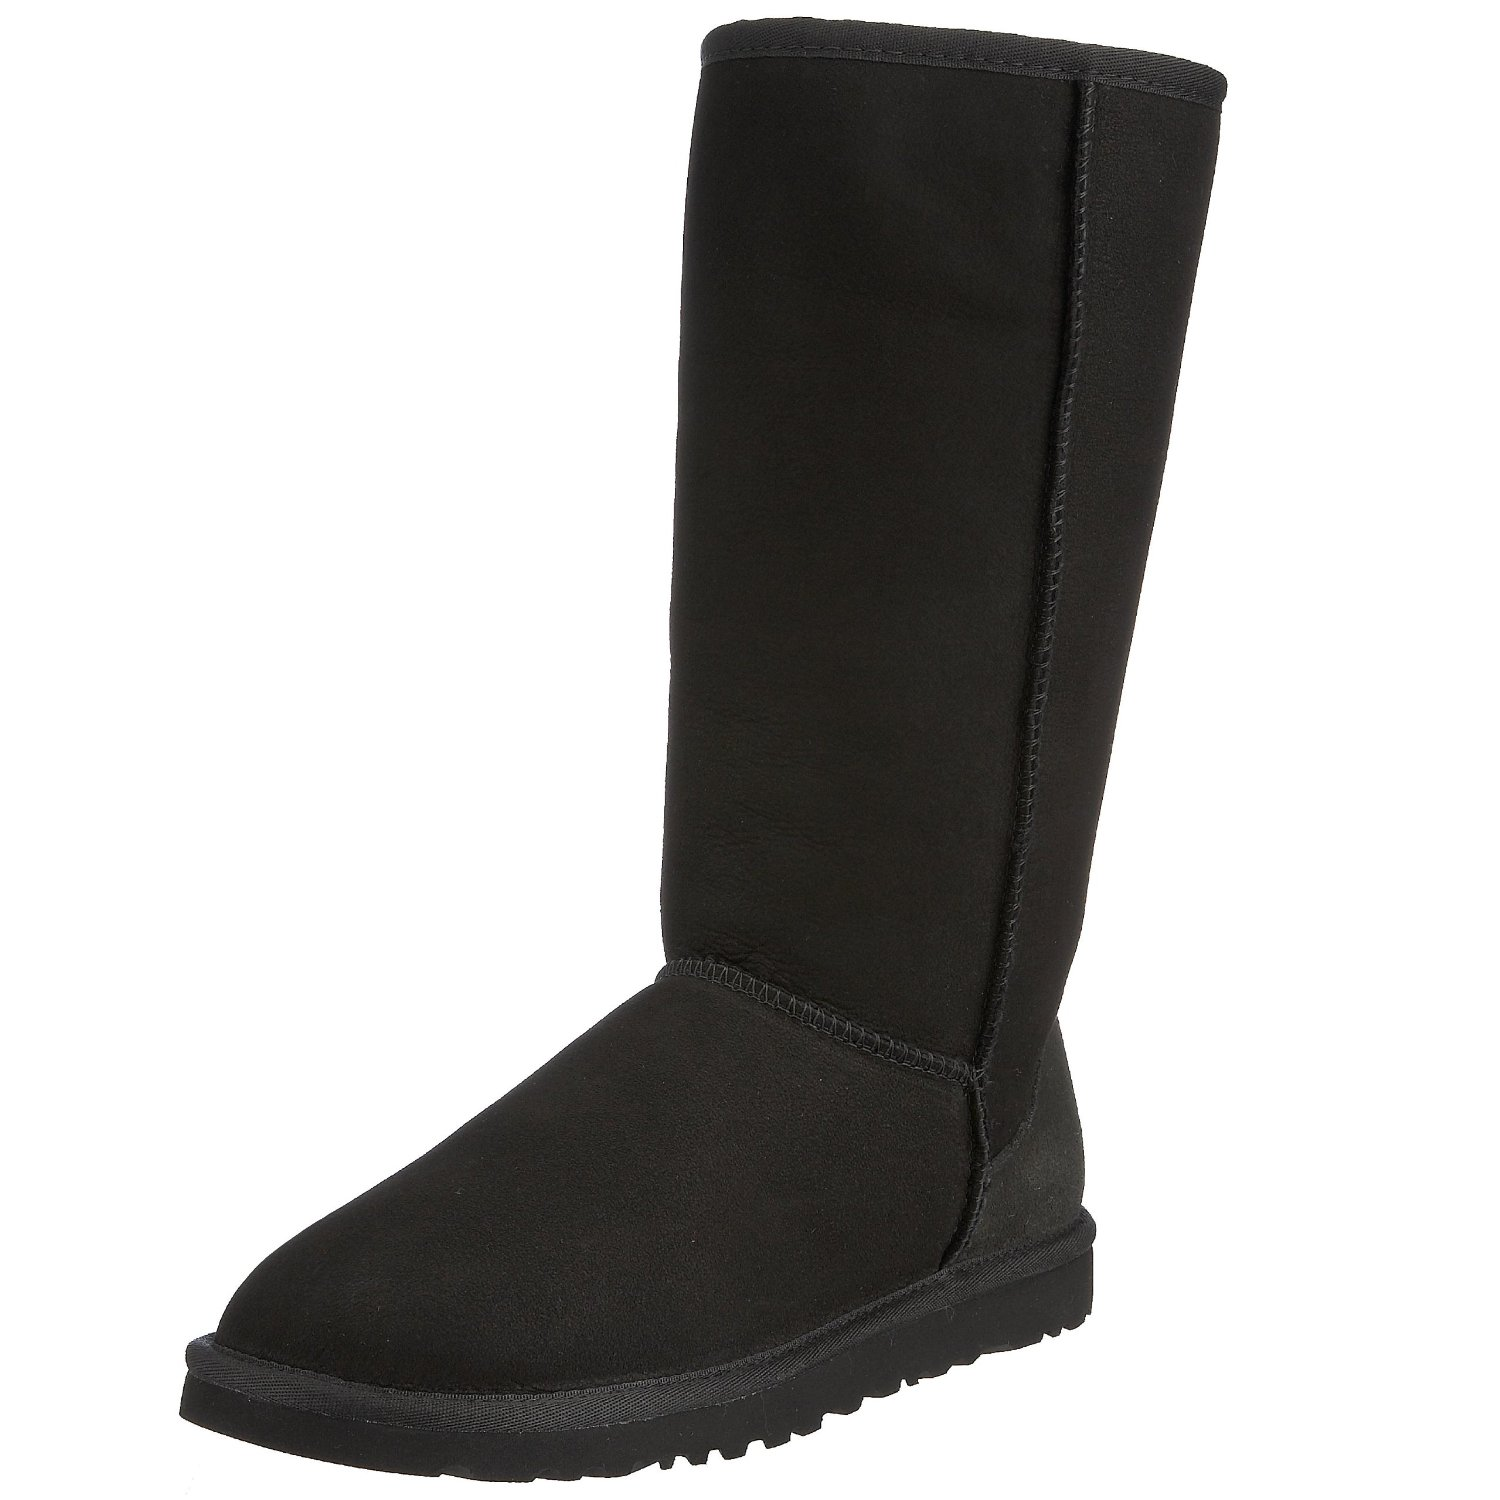 Popular You May Want To Look At Ugg Boots For Women, This Is One Tall Boot For Women Your Feet Will Ever Require Without Question Leblanc Is A Diet And Eatright Advocate, Constantly On The Move To Help Those Feeling Disempowered Due To